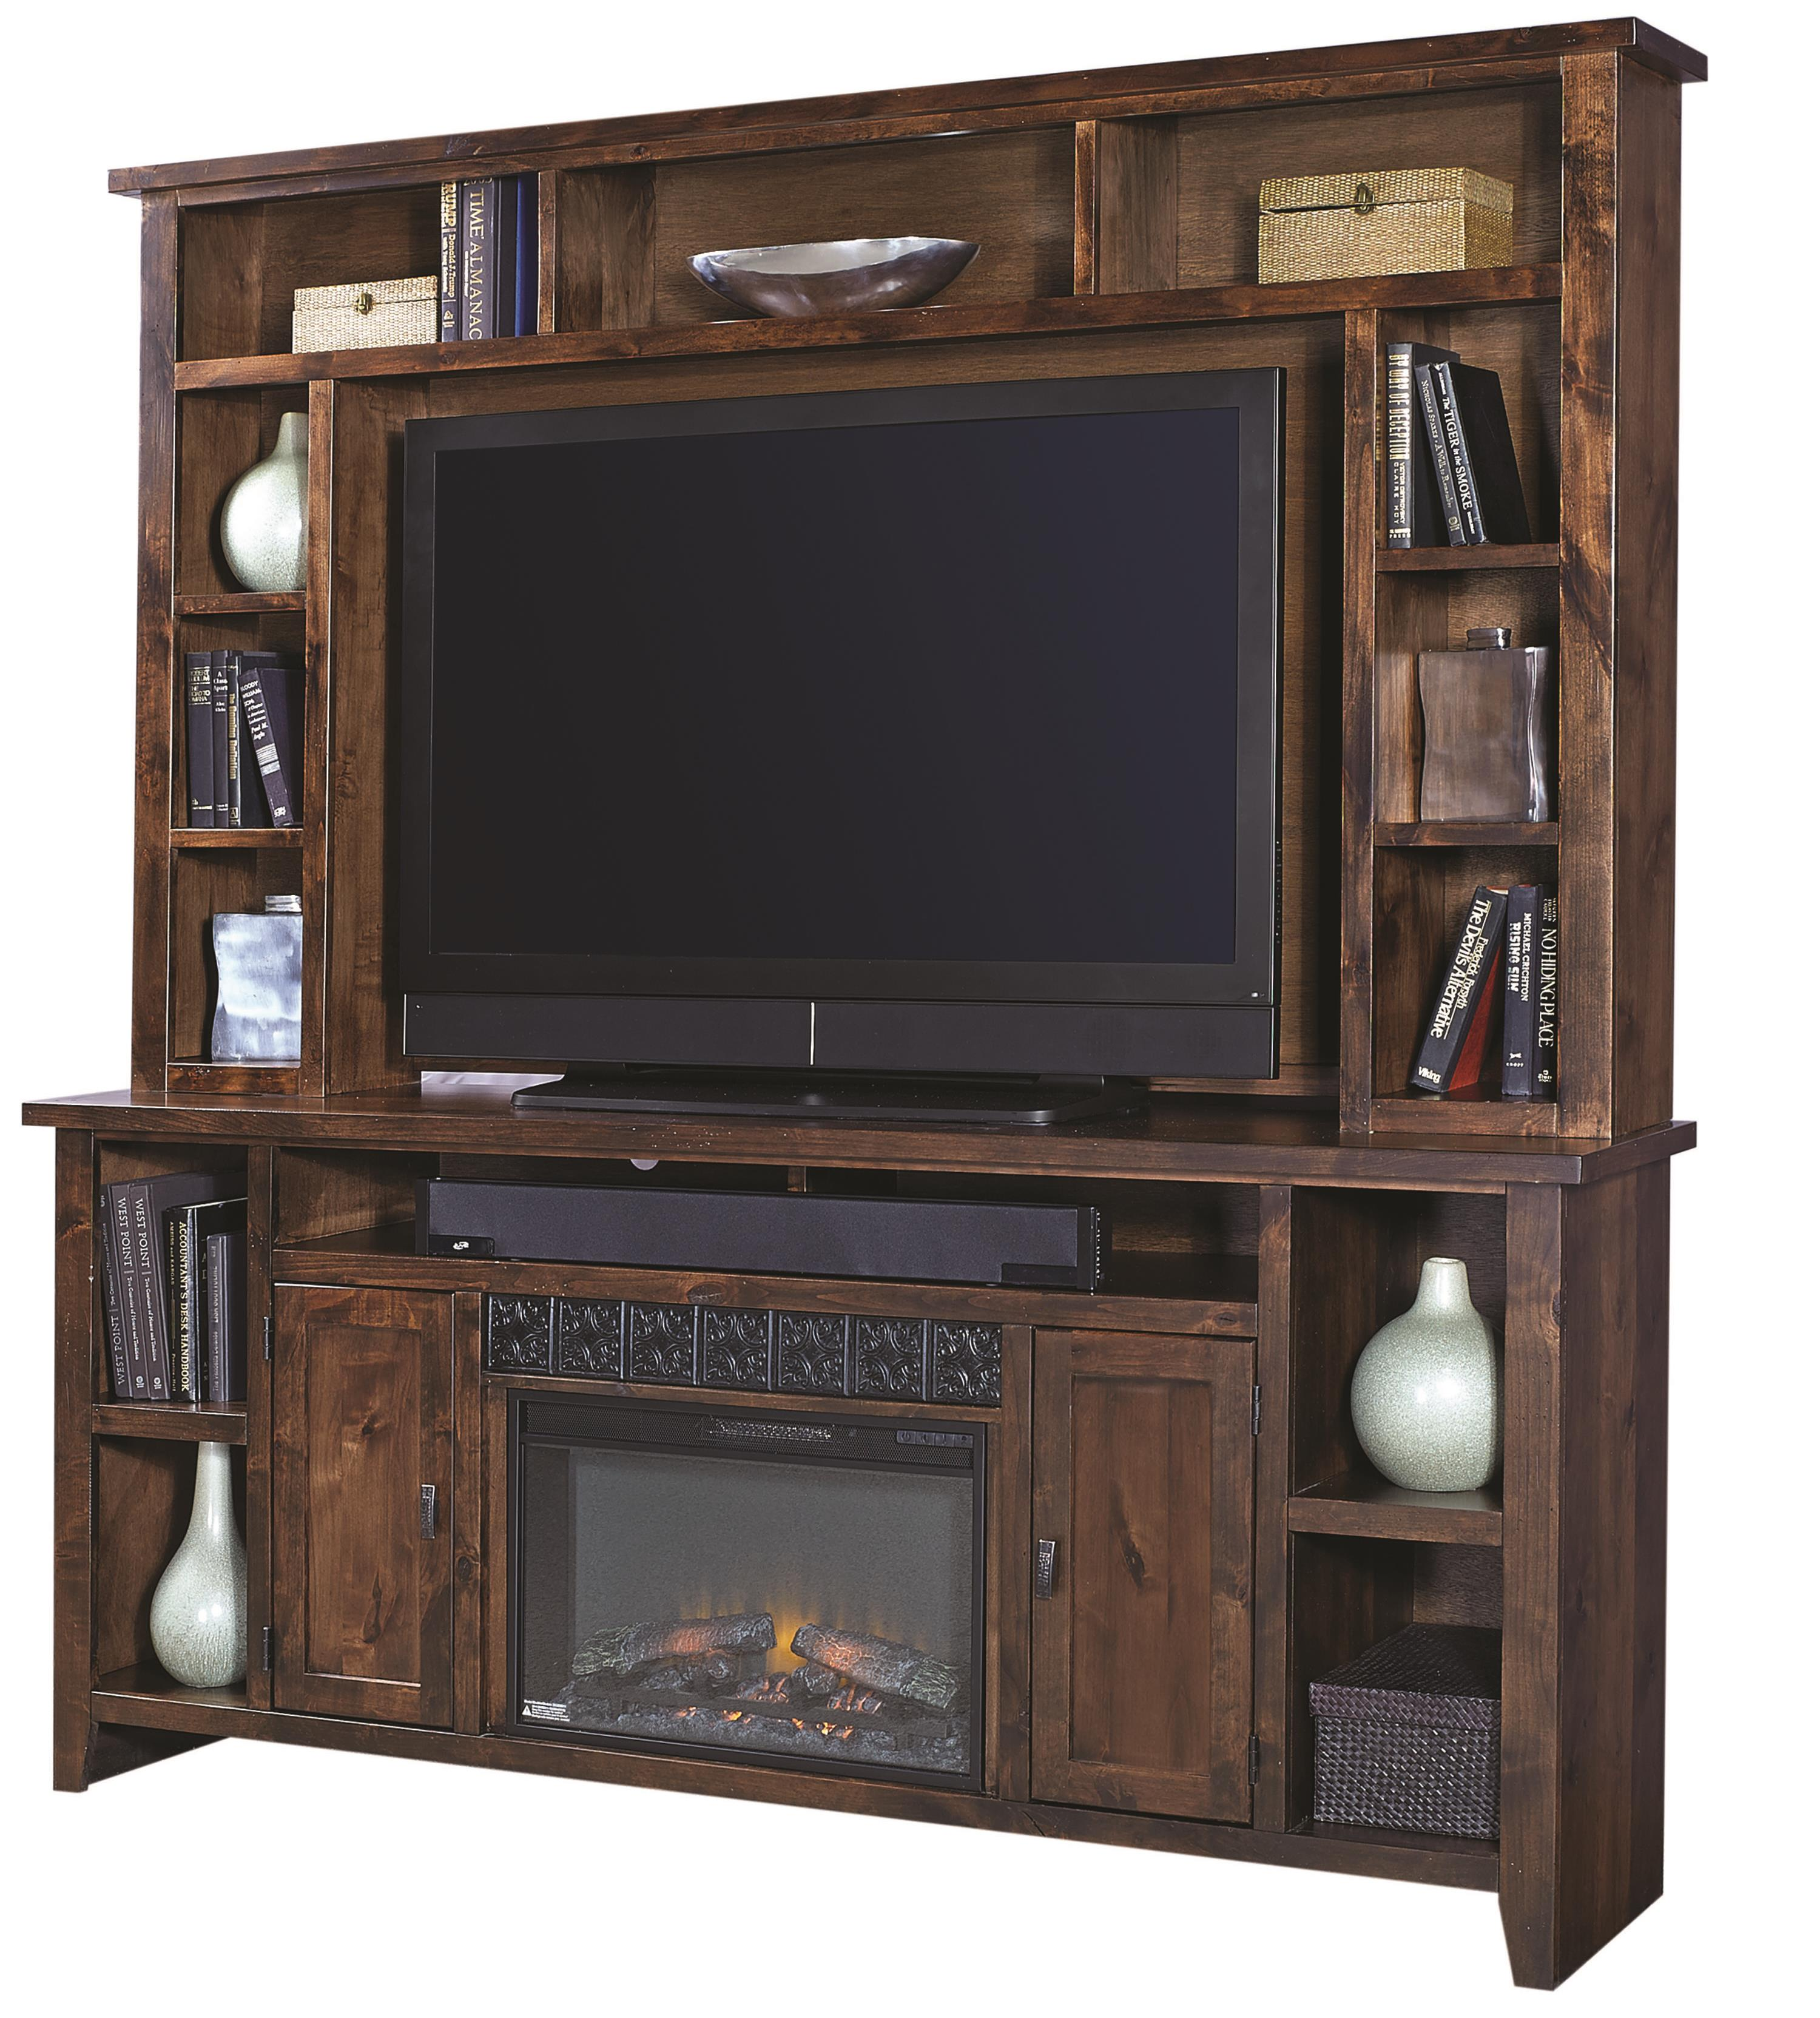 """Alder Grove 84"""" Fireplace Console with Hutch by Aspenhome at Stoney Creek Furniture"""